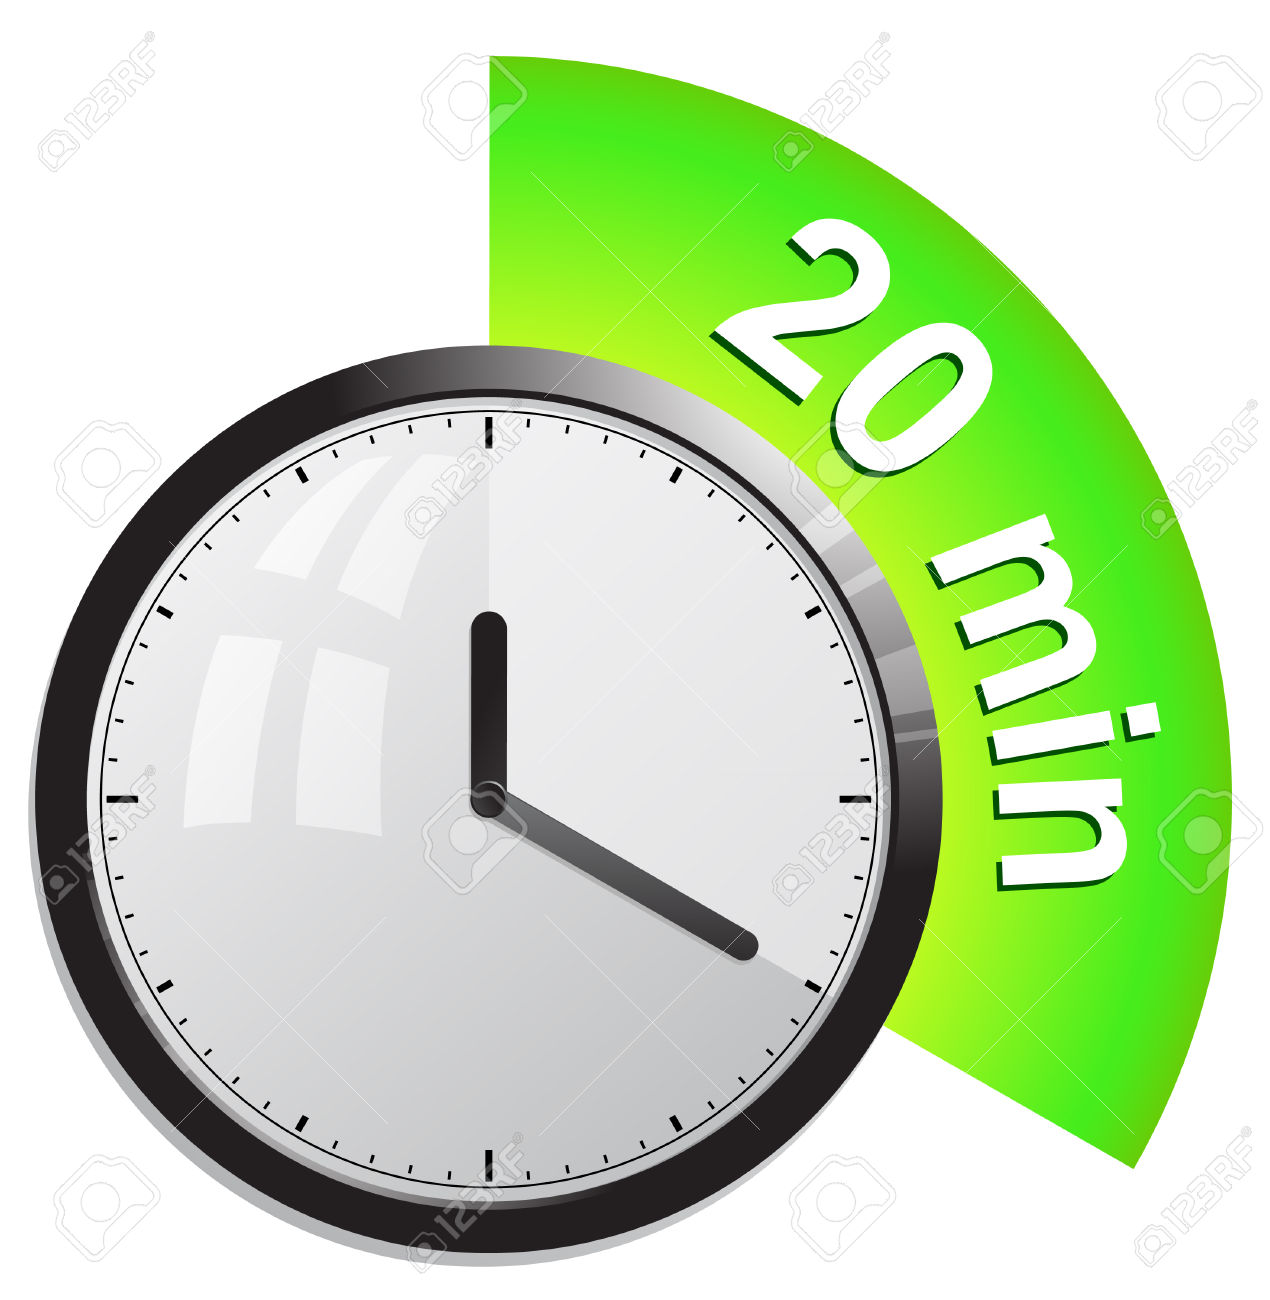 Clock, Timer 20 Minutes Royalty Free Cliparts, Vectors, And Stock.